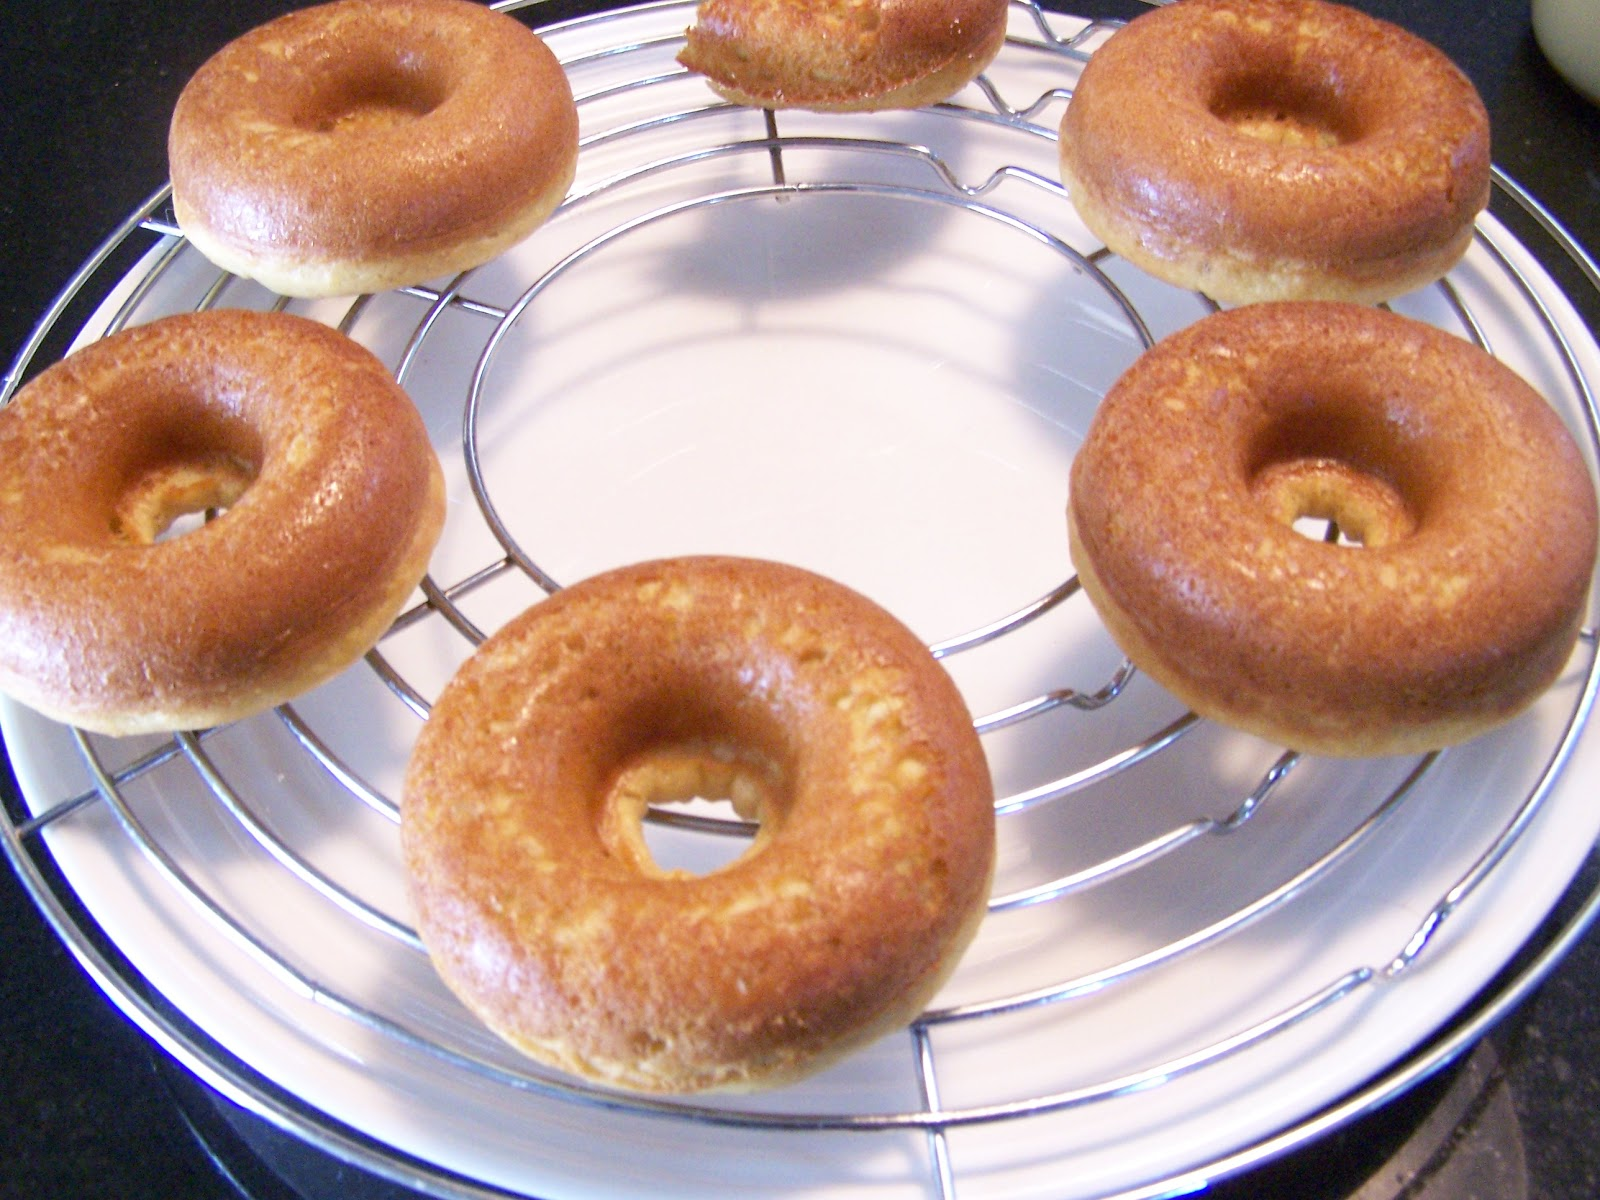 Baked Doughnuts Old Fashioned Glazed